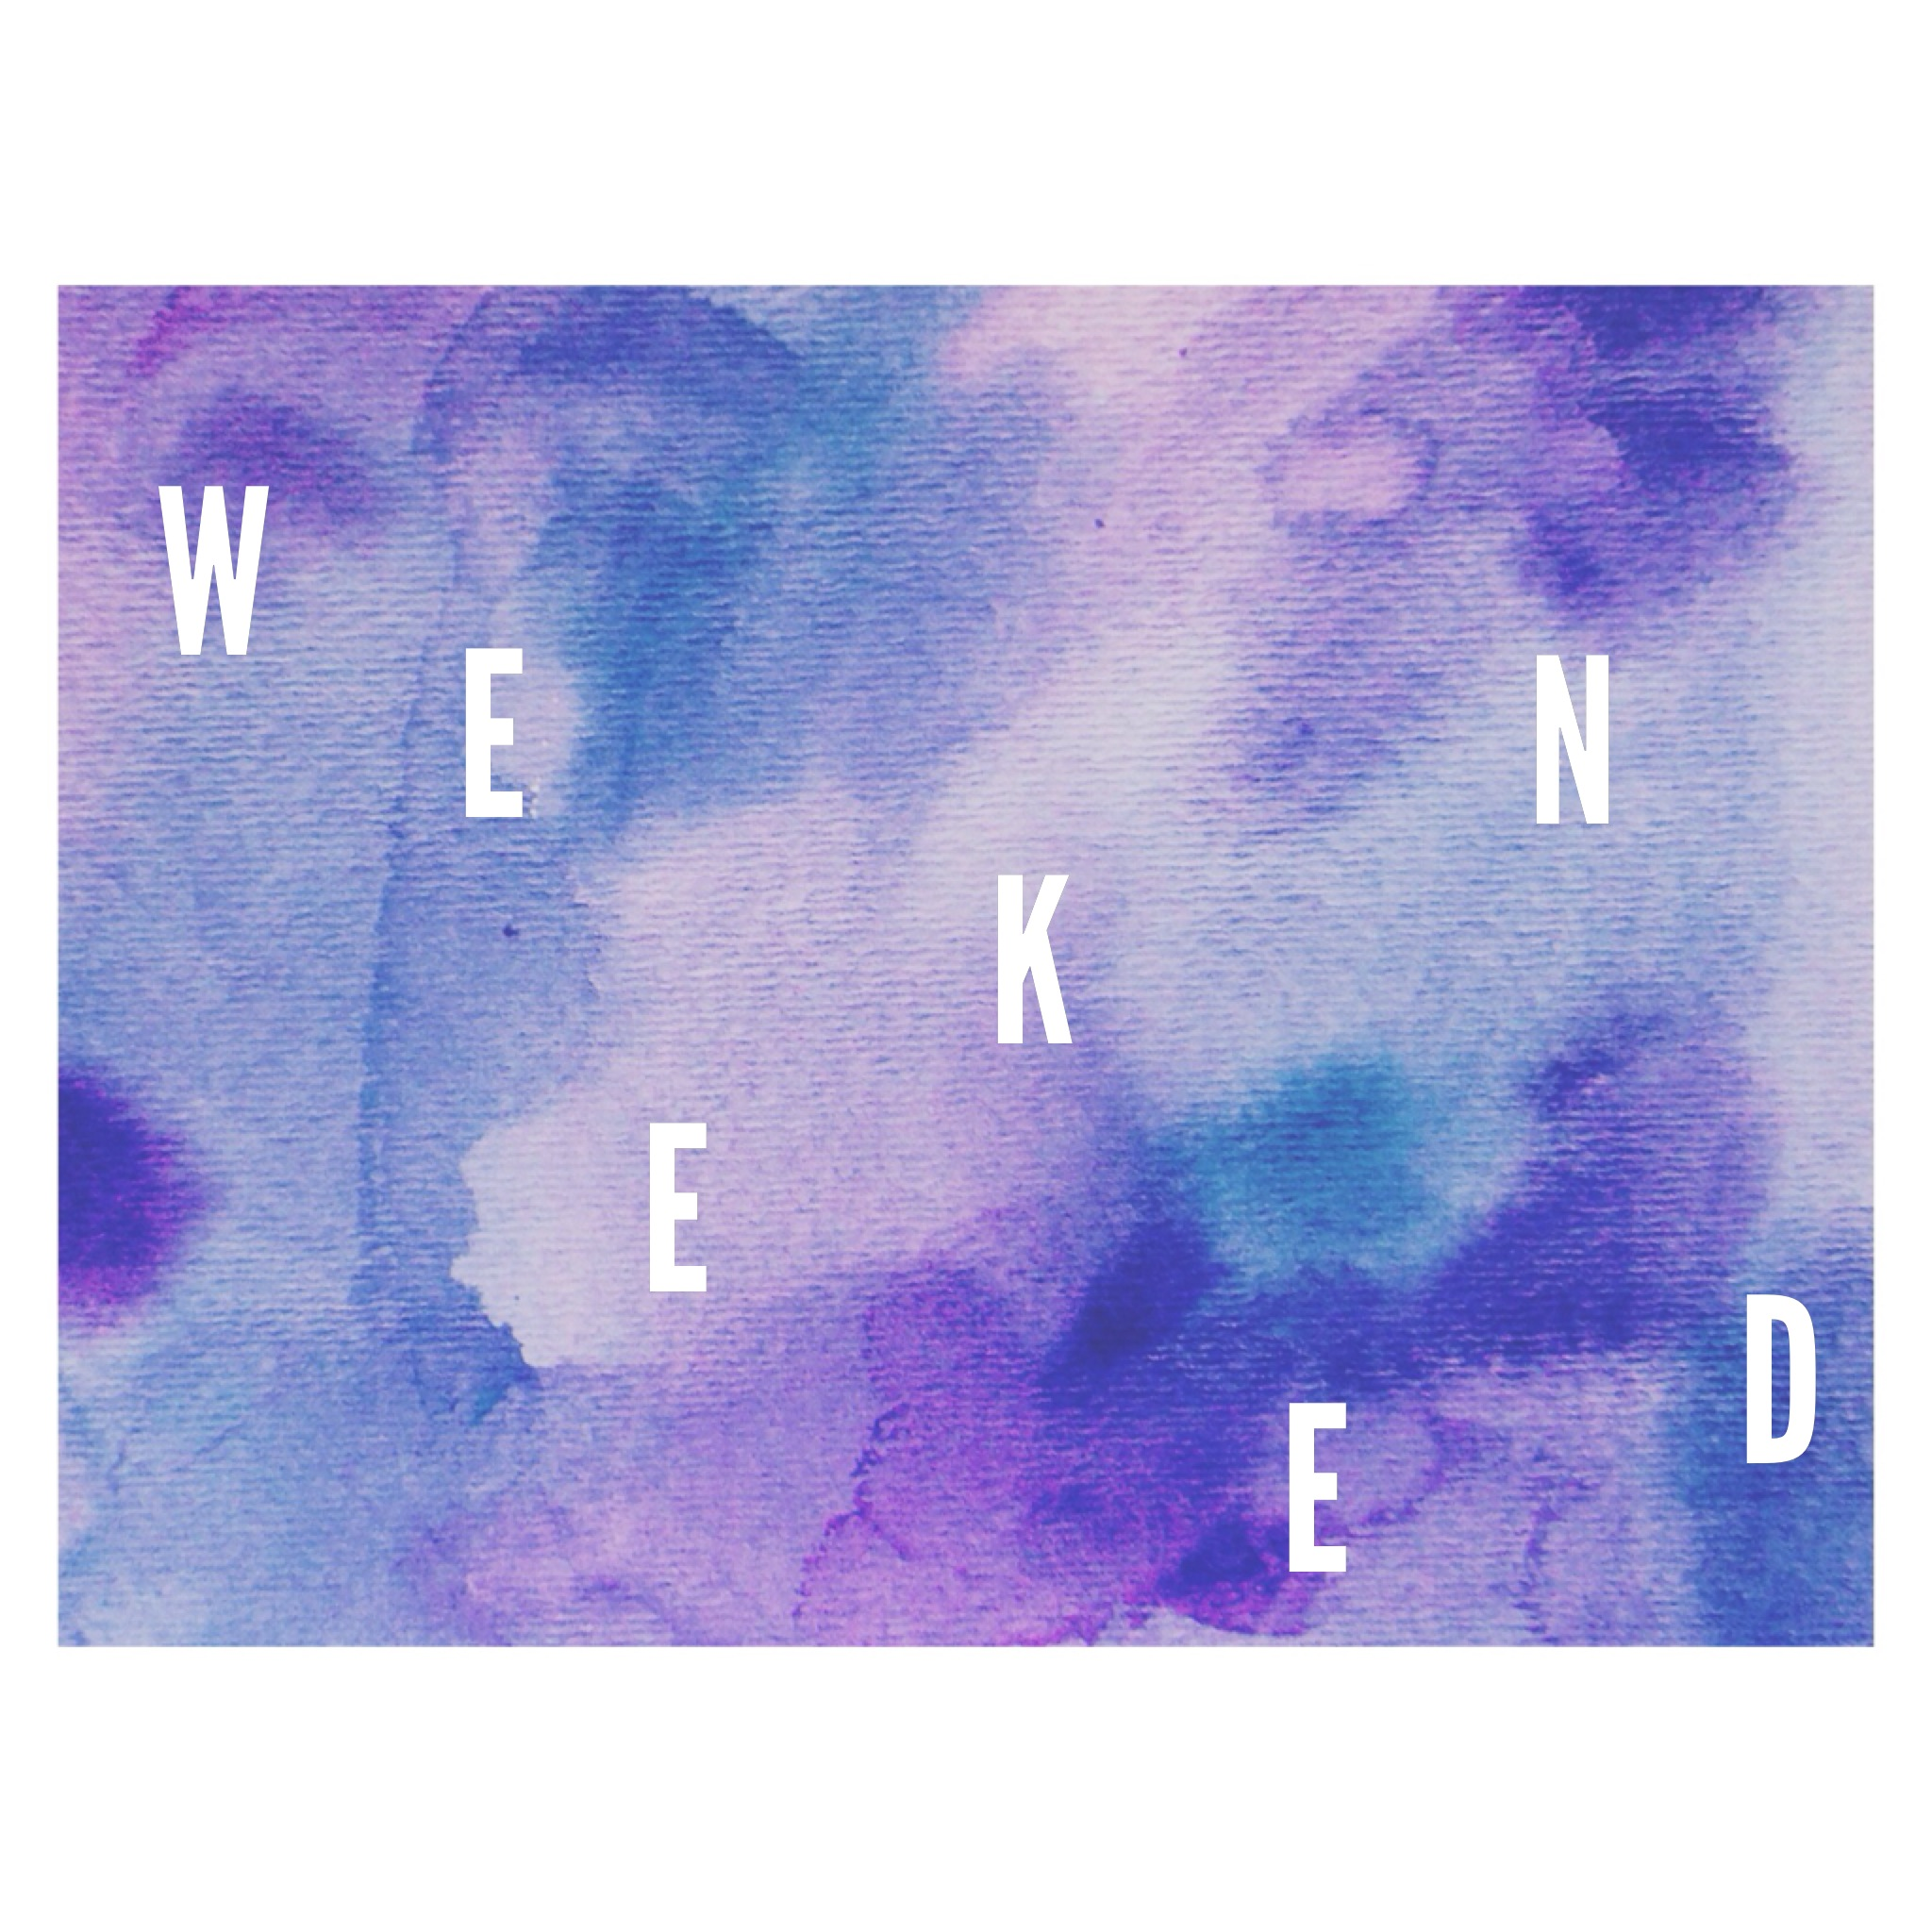 WEEKEND. Watercolor / Typography